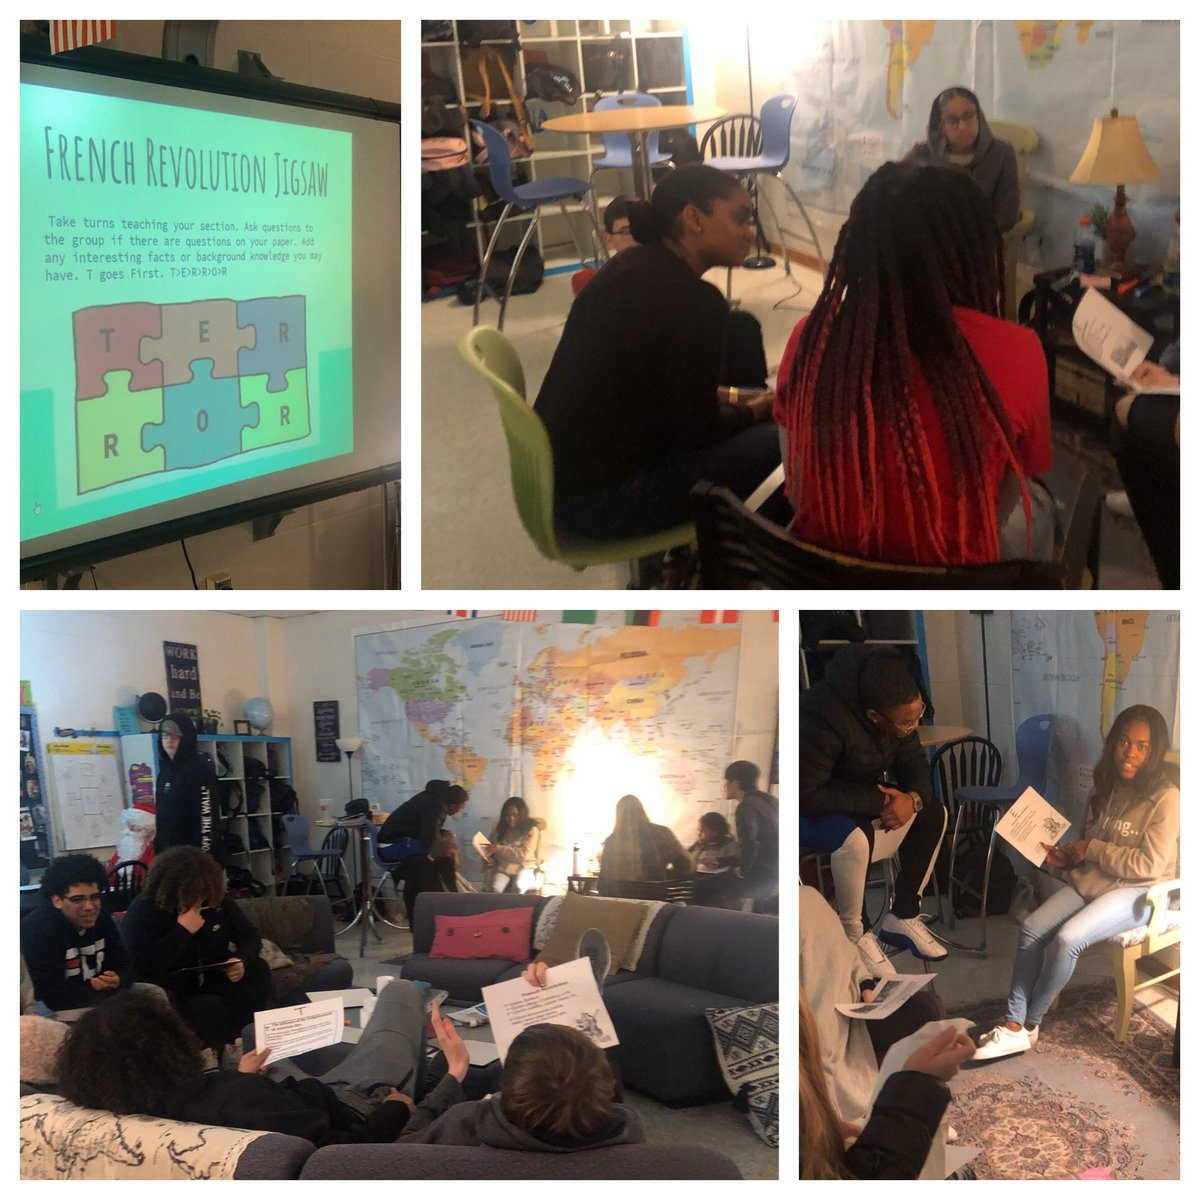 French Revolution jigsaw! @grcollegiate students teaching students and posing questions! 😍 @vbschools #VBSEL